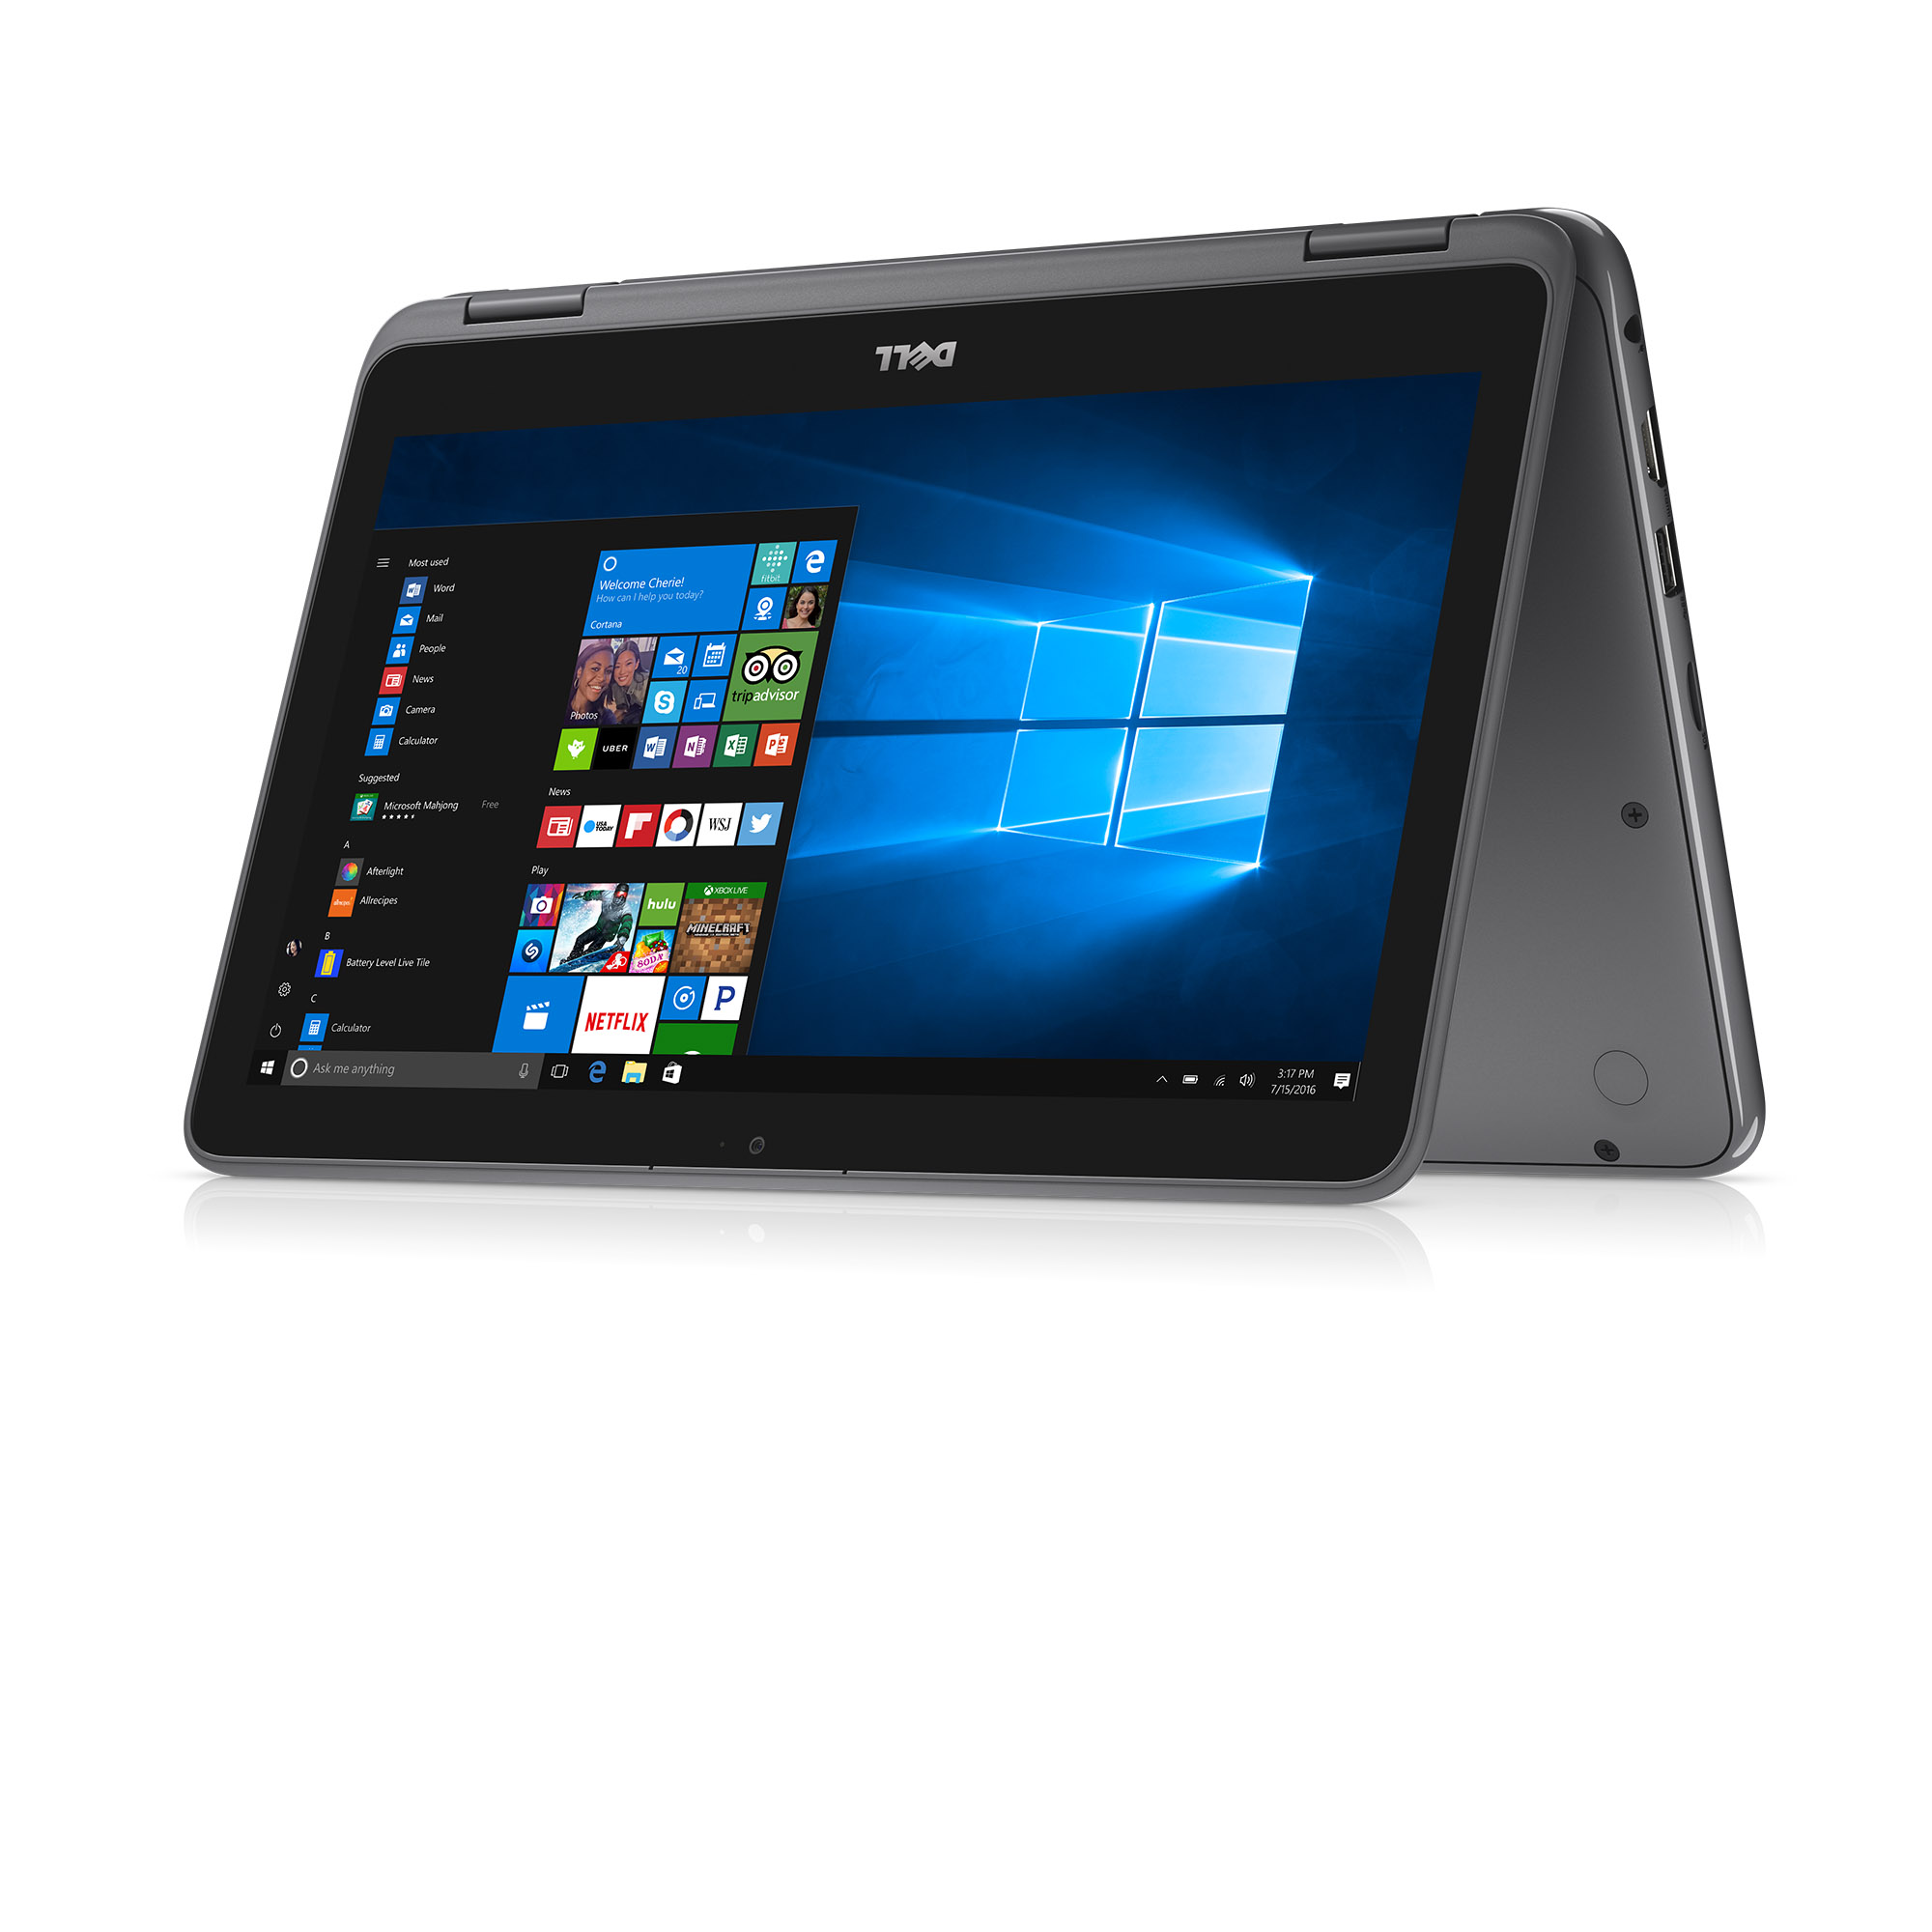 "Dell Inspiron 11 Laptop, 11.6"", Intel® Pentium® N3710, Intel® HD Graphics, 500GB 5400 HDD Storage, 4GB RAM, i3168-3272GRY"